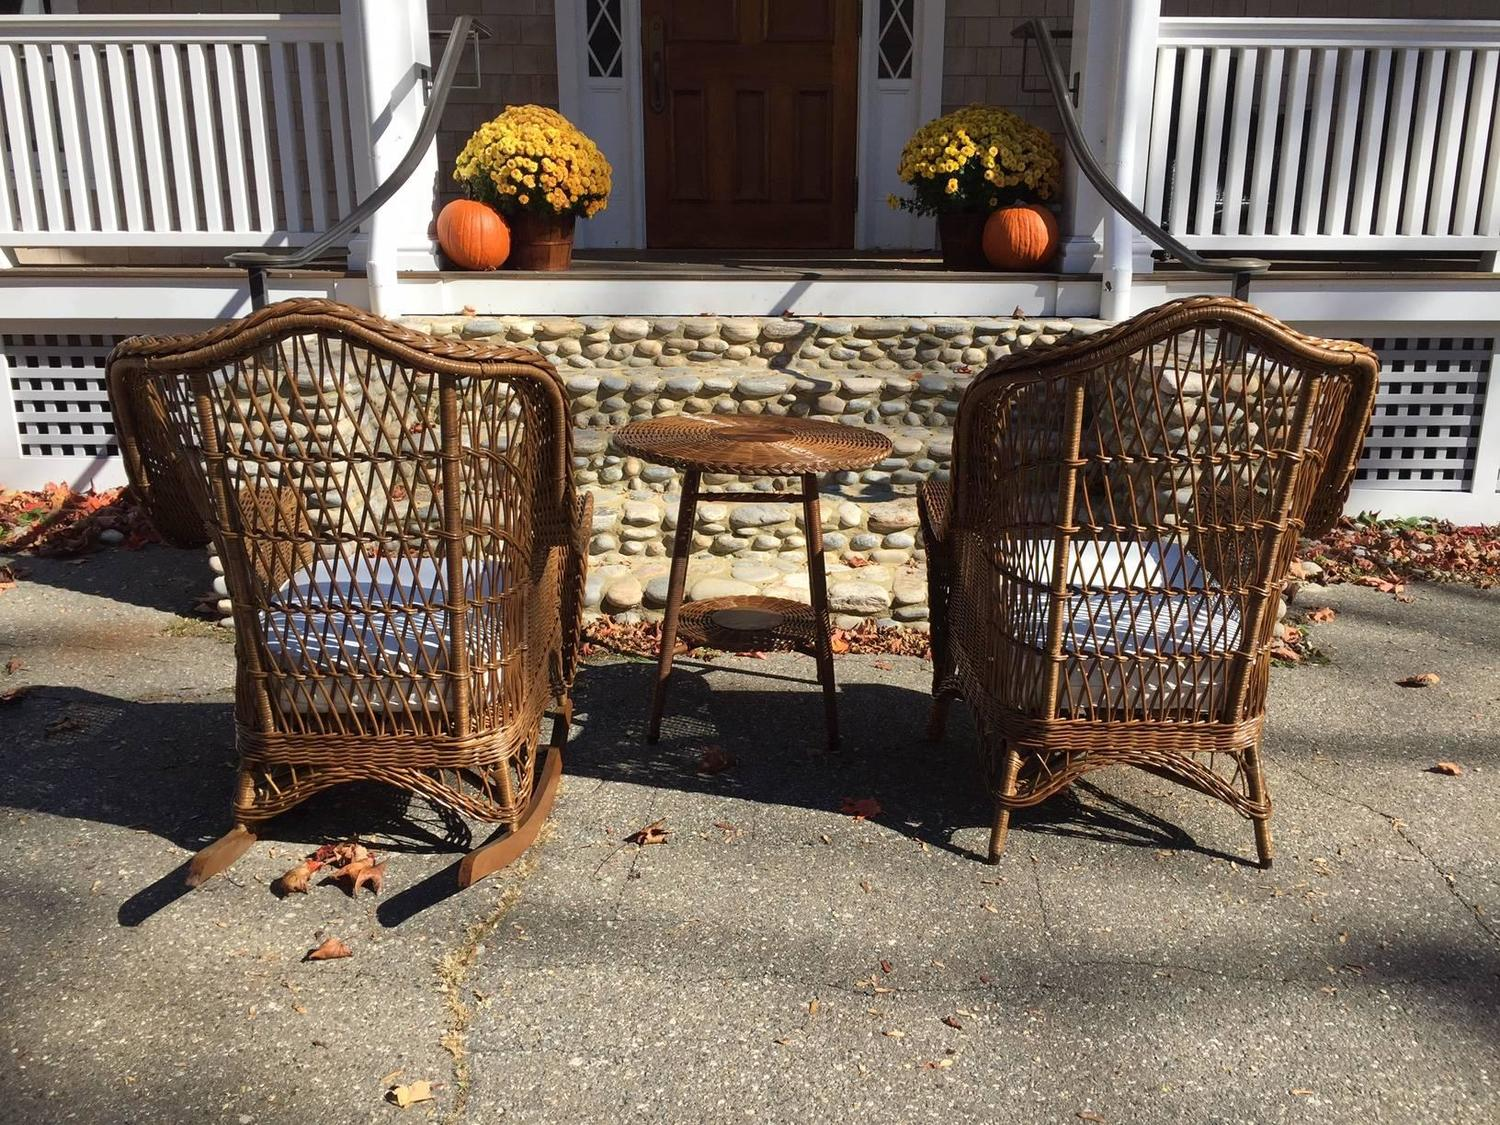 heywood wakefield wicker chairs cheap rental chair covers antique and rocker at 1stdibs